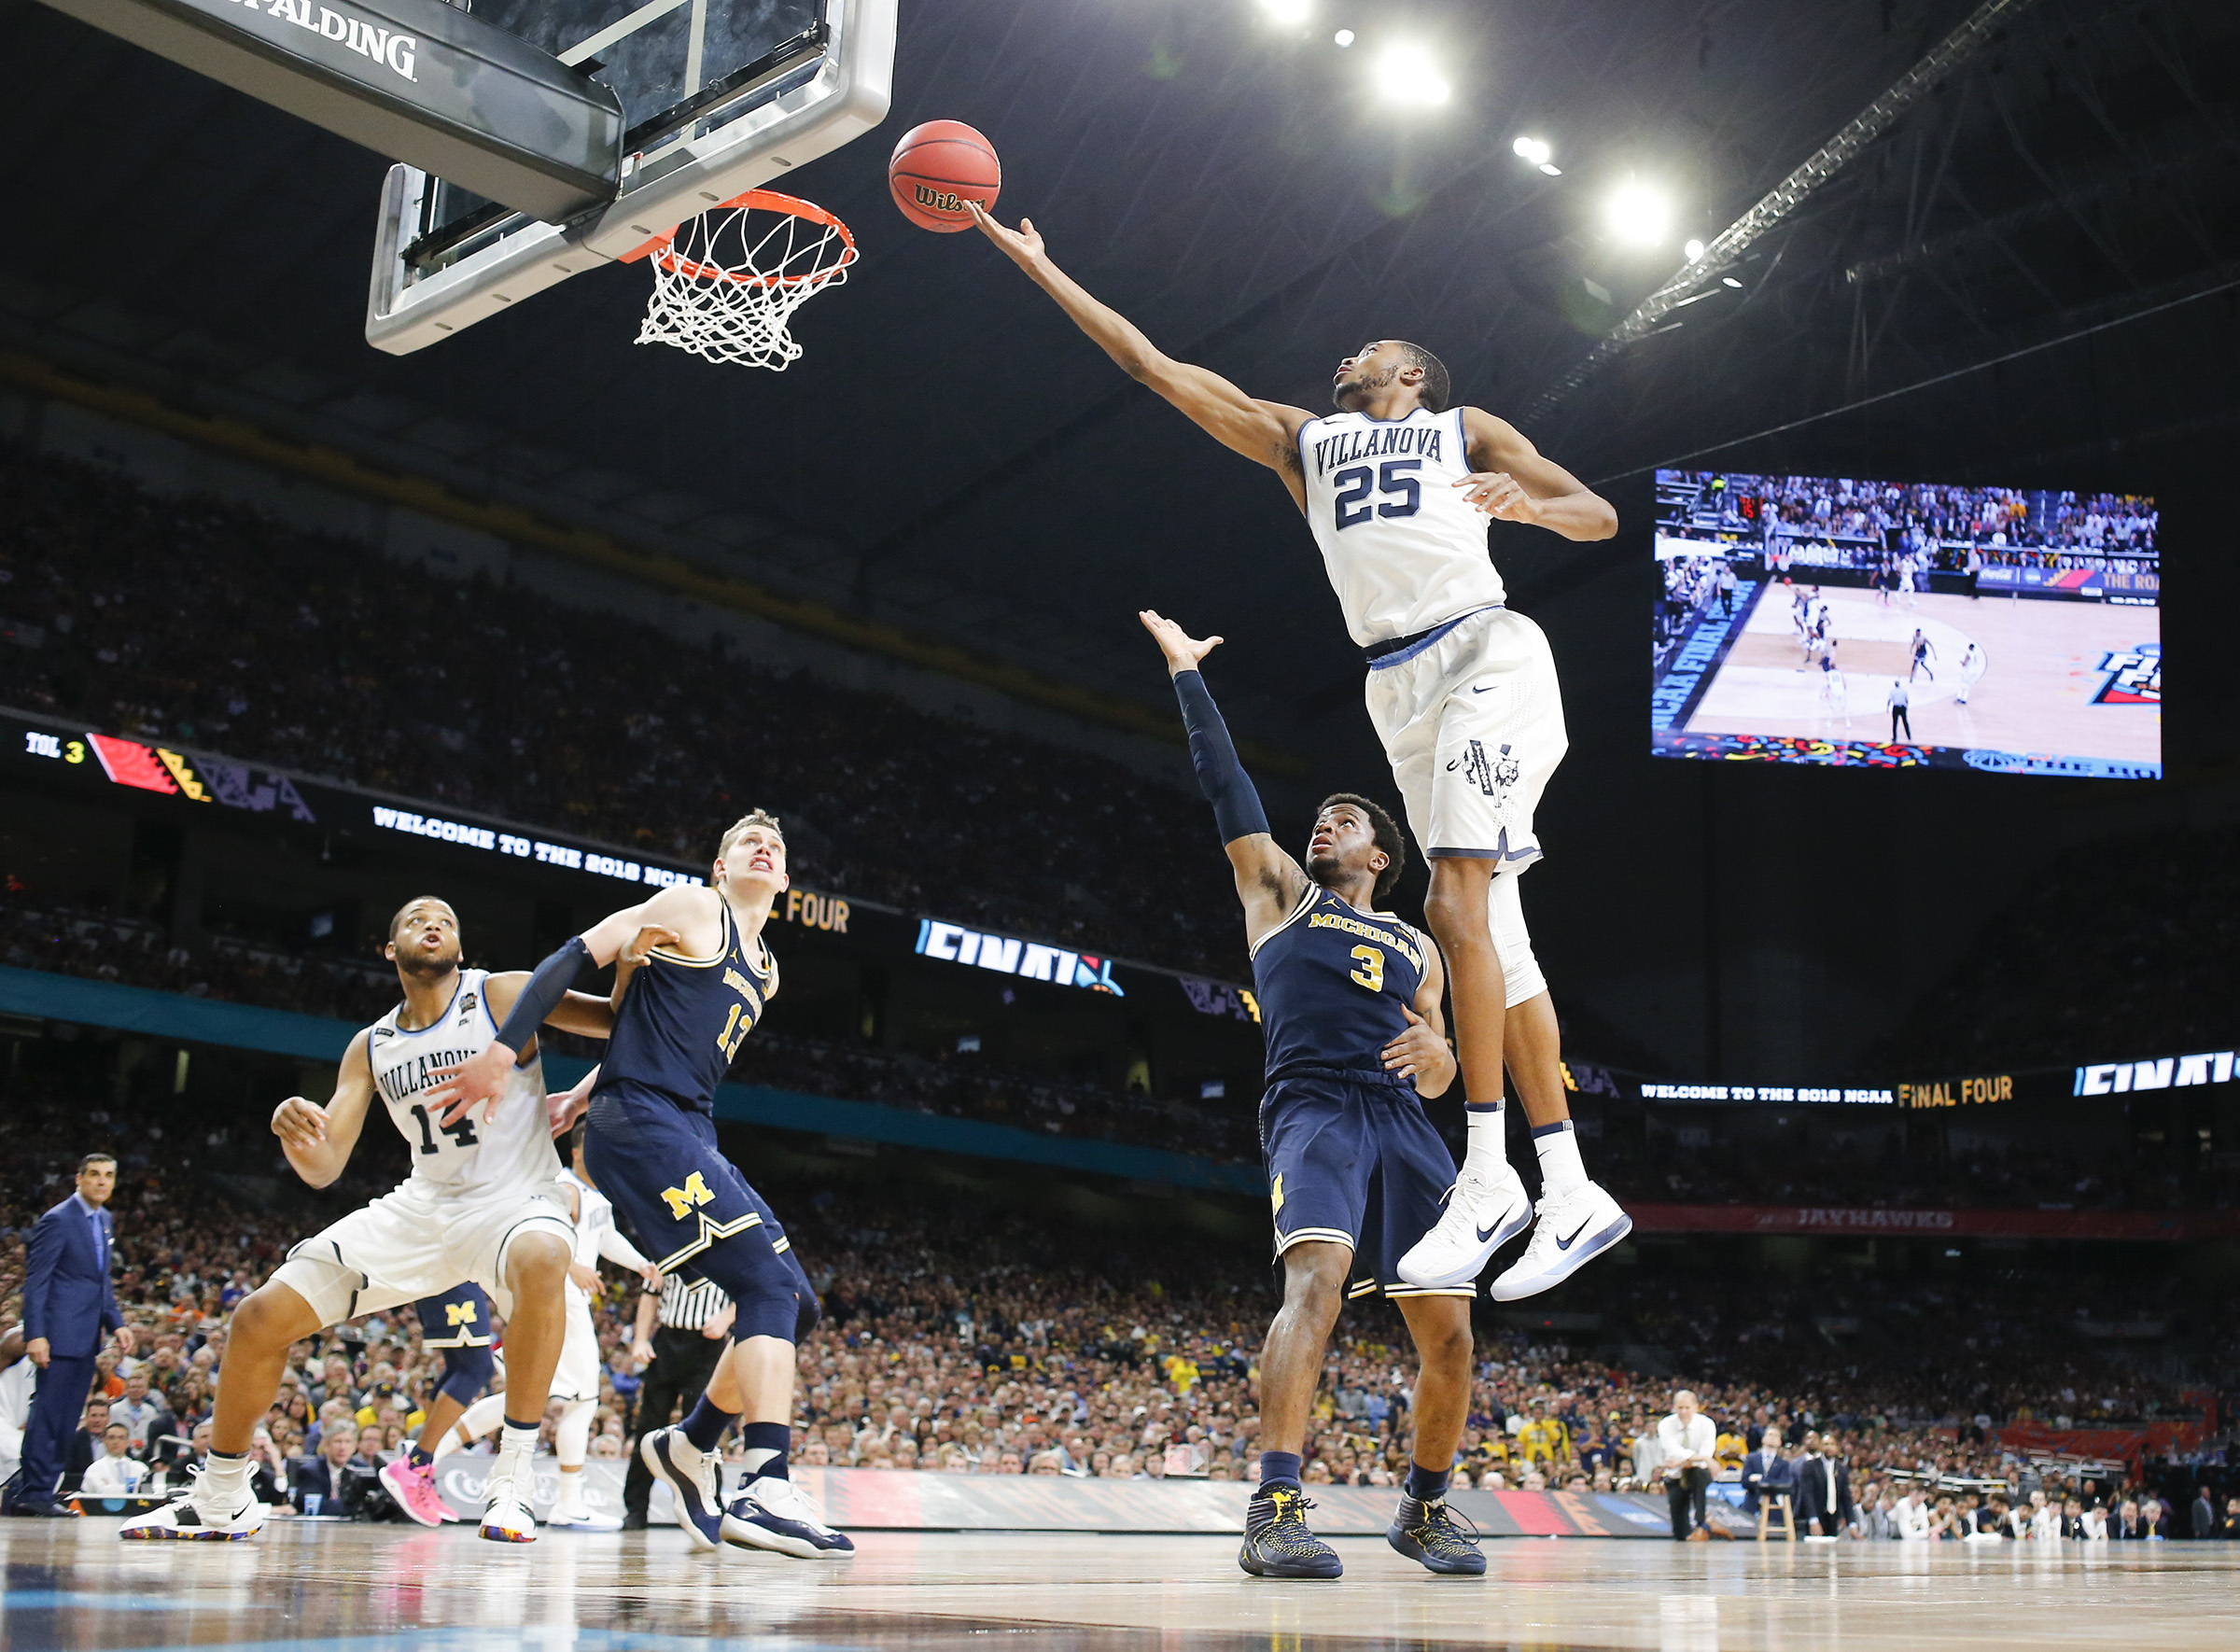 Players like Mikal Bridges, who can shoot and defend, are the future of the NBA.